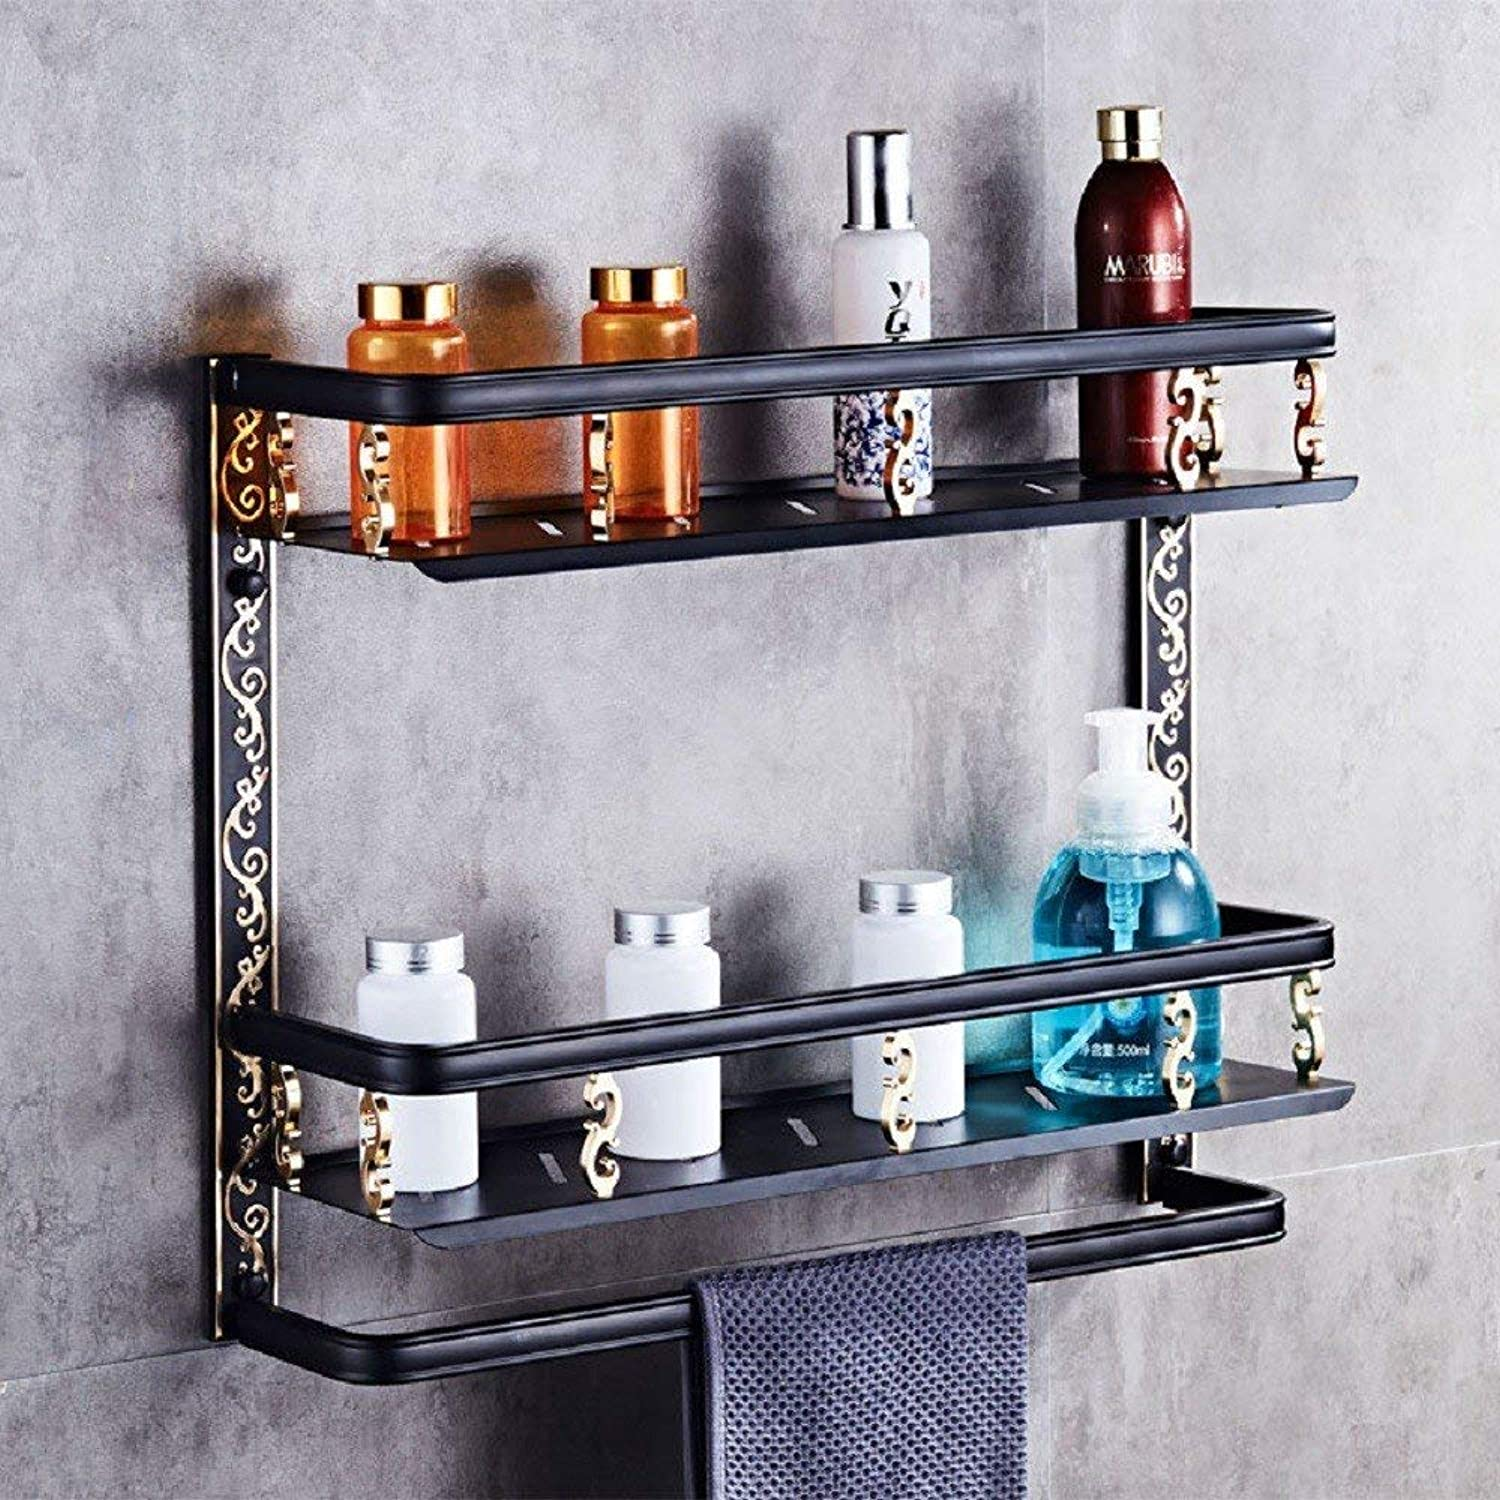 Towel Rack Space Aluminum Pendant Antique Double Layer Stacks, American Space Aluminum Hardware Multi-Functional Bathroom Towel Rack,Double-Deck Bathroom Towel Shelf (color   Monolayer)